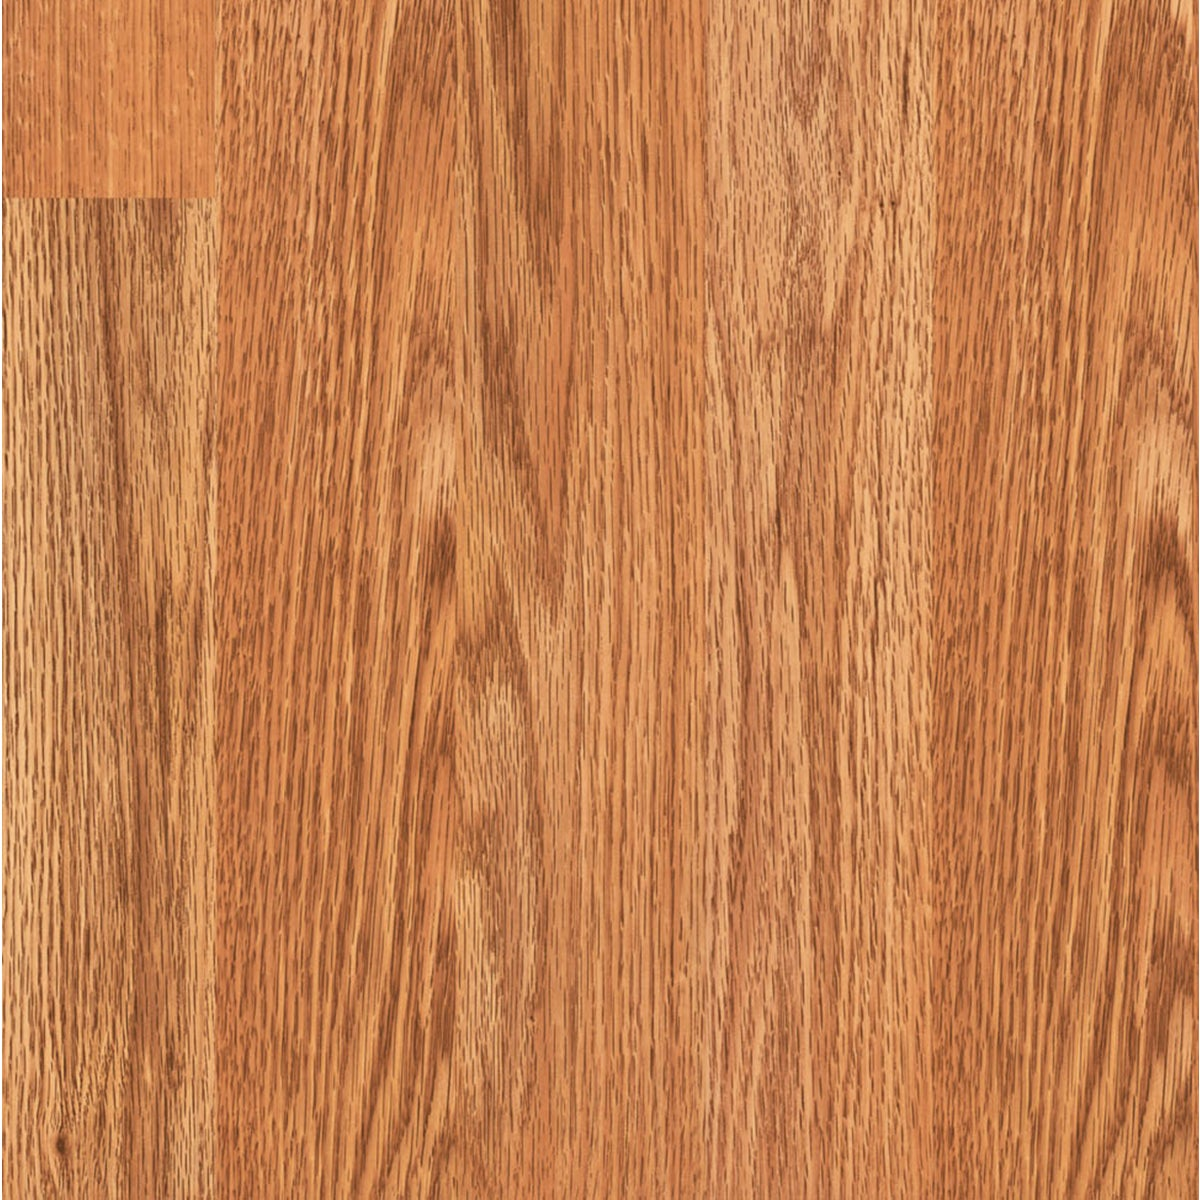 ROYAL OAK LAMINATE FLOOR